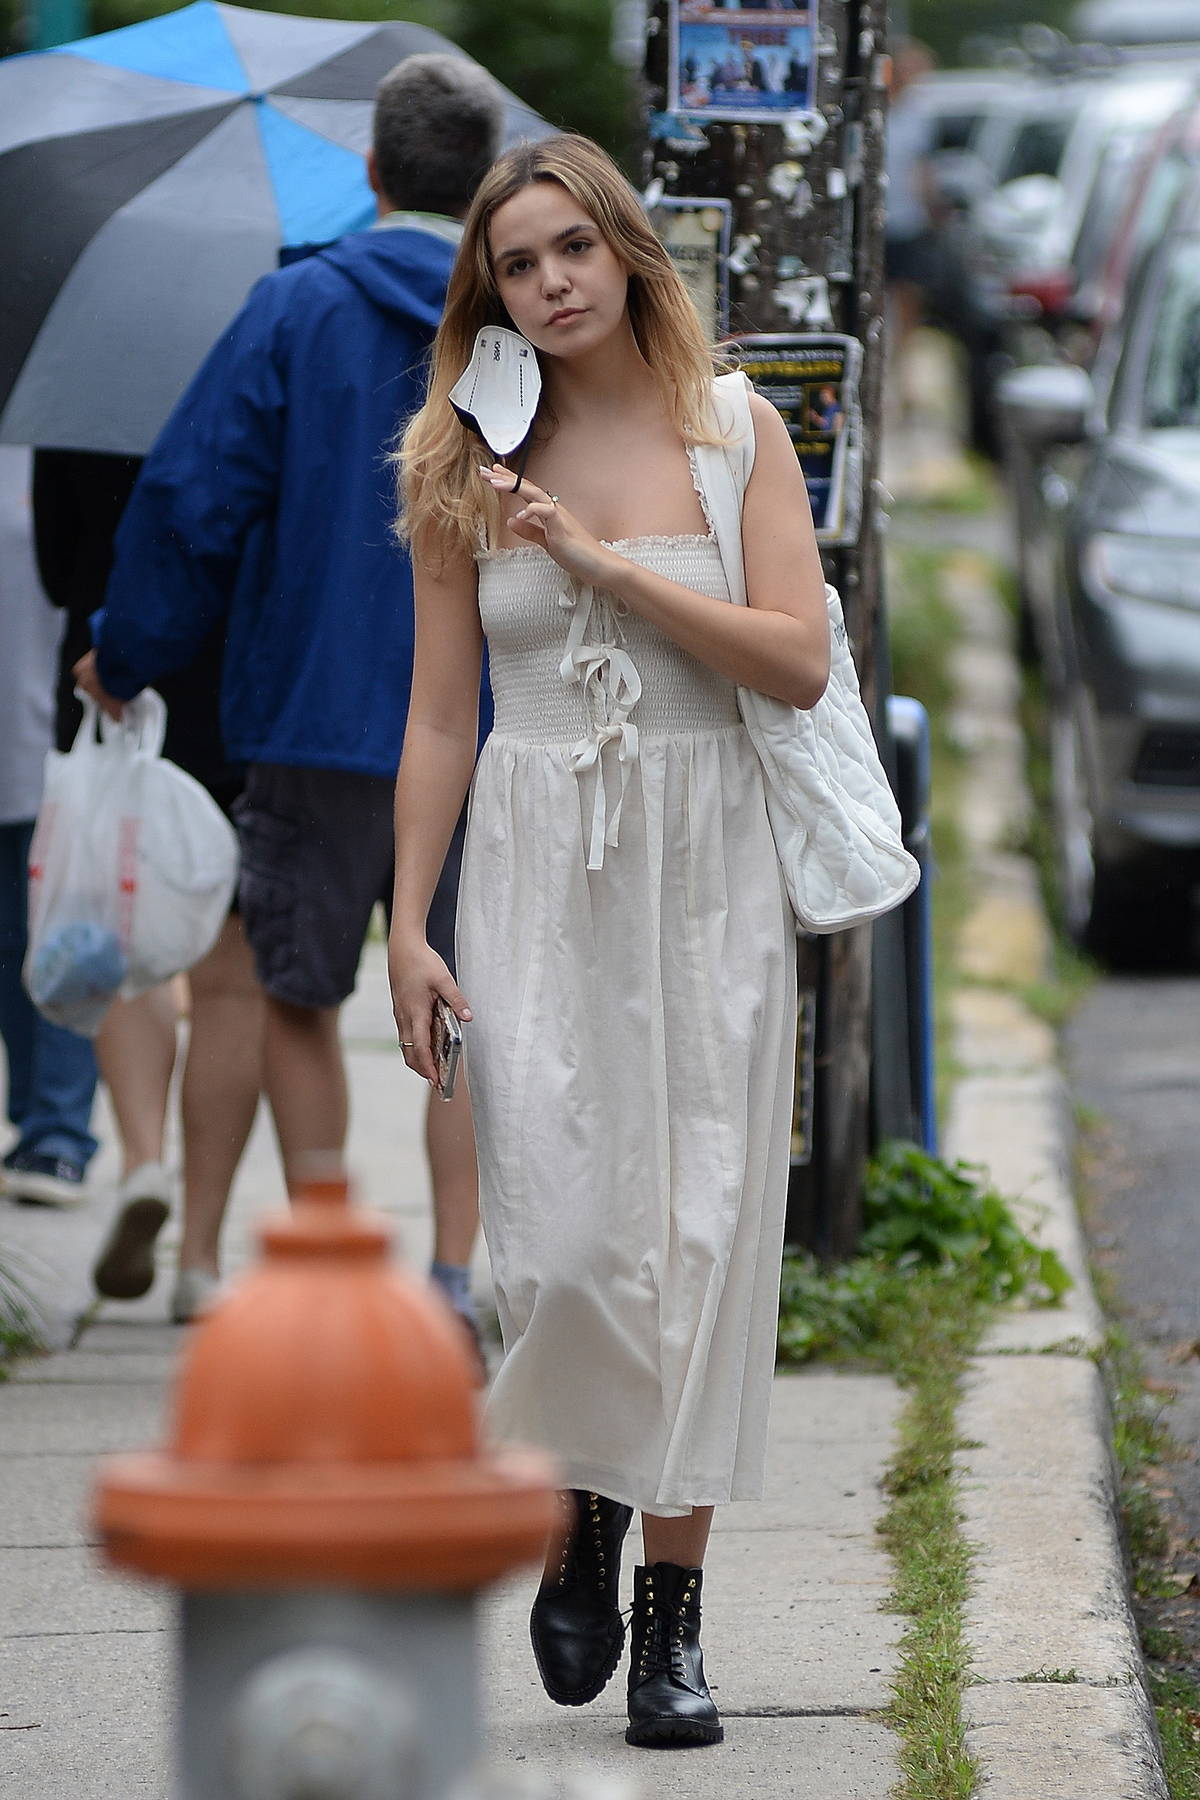 Bailee Madison steps out for some shopping wearing an off-white dress in Upstate New York